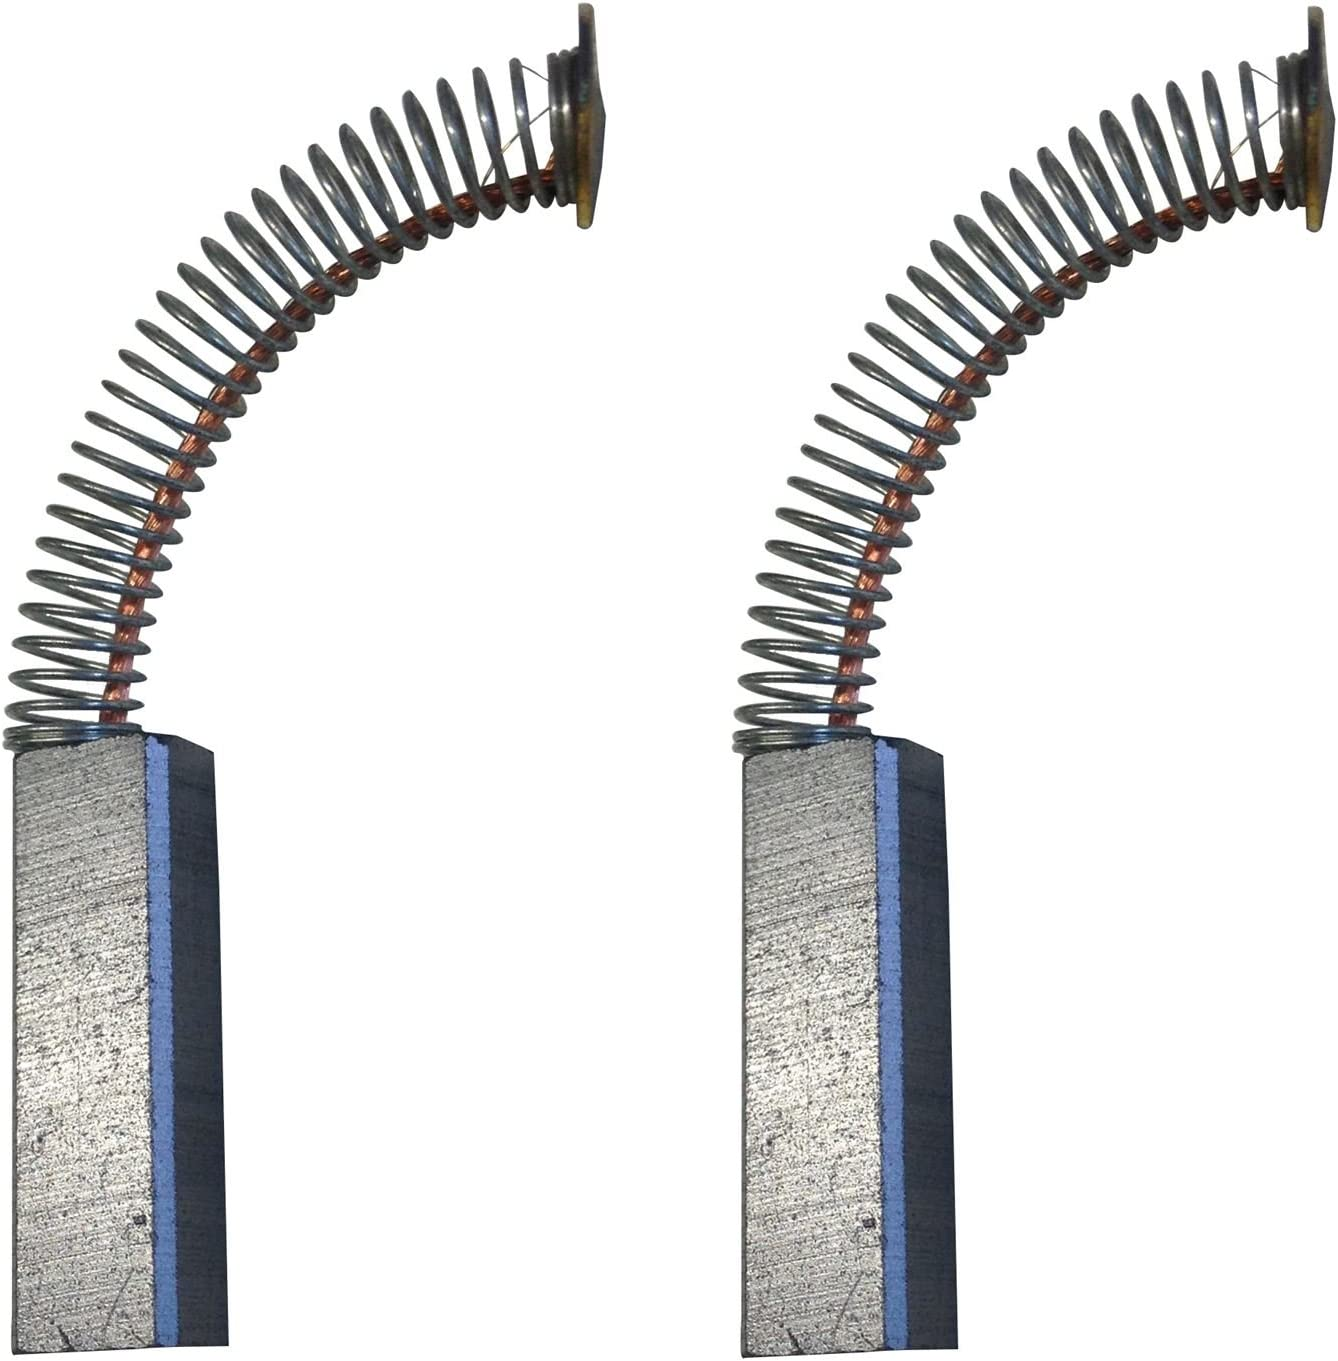 2x Carbon Brushes Use on Mixer Mixer Size - 5 X 7 X 22